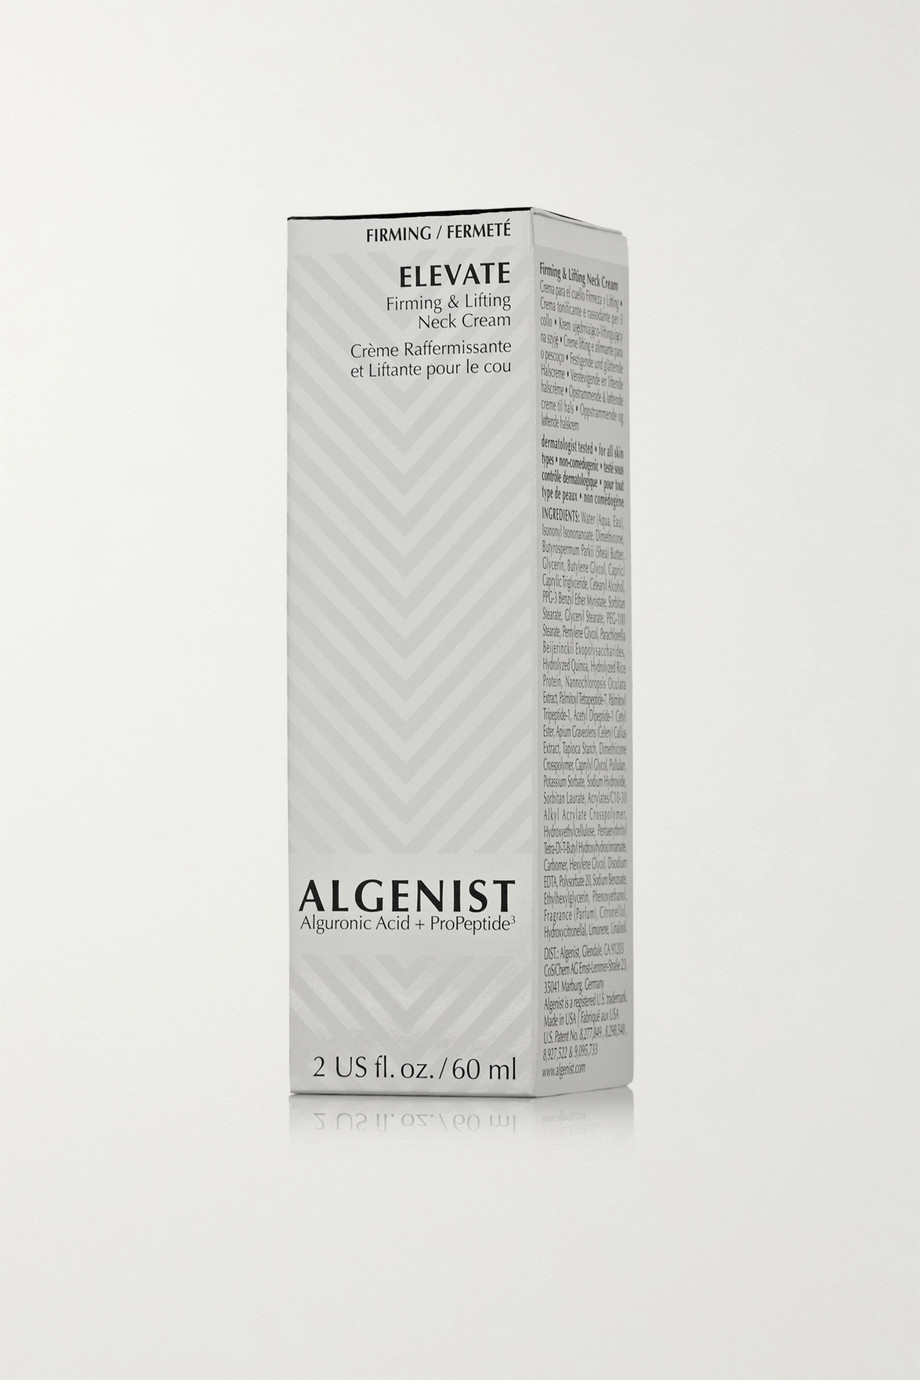 ALGENIST ELEVATE Firming & Lifting Neck Cream, 60ml